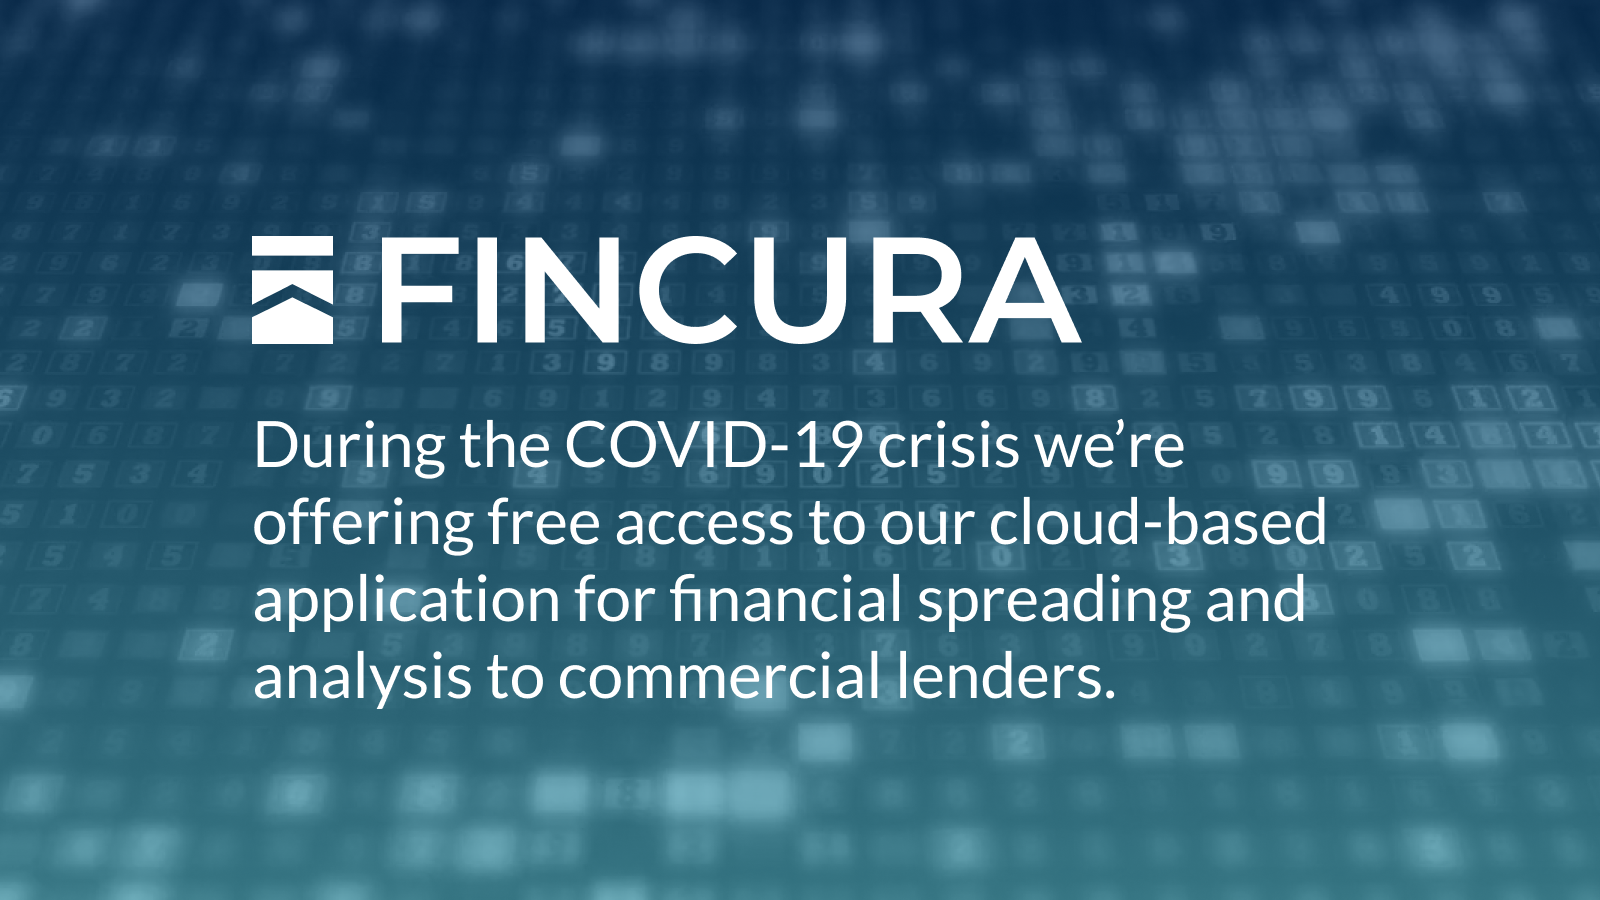 Fincura is free during this crisis